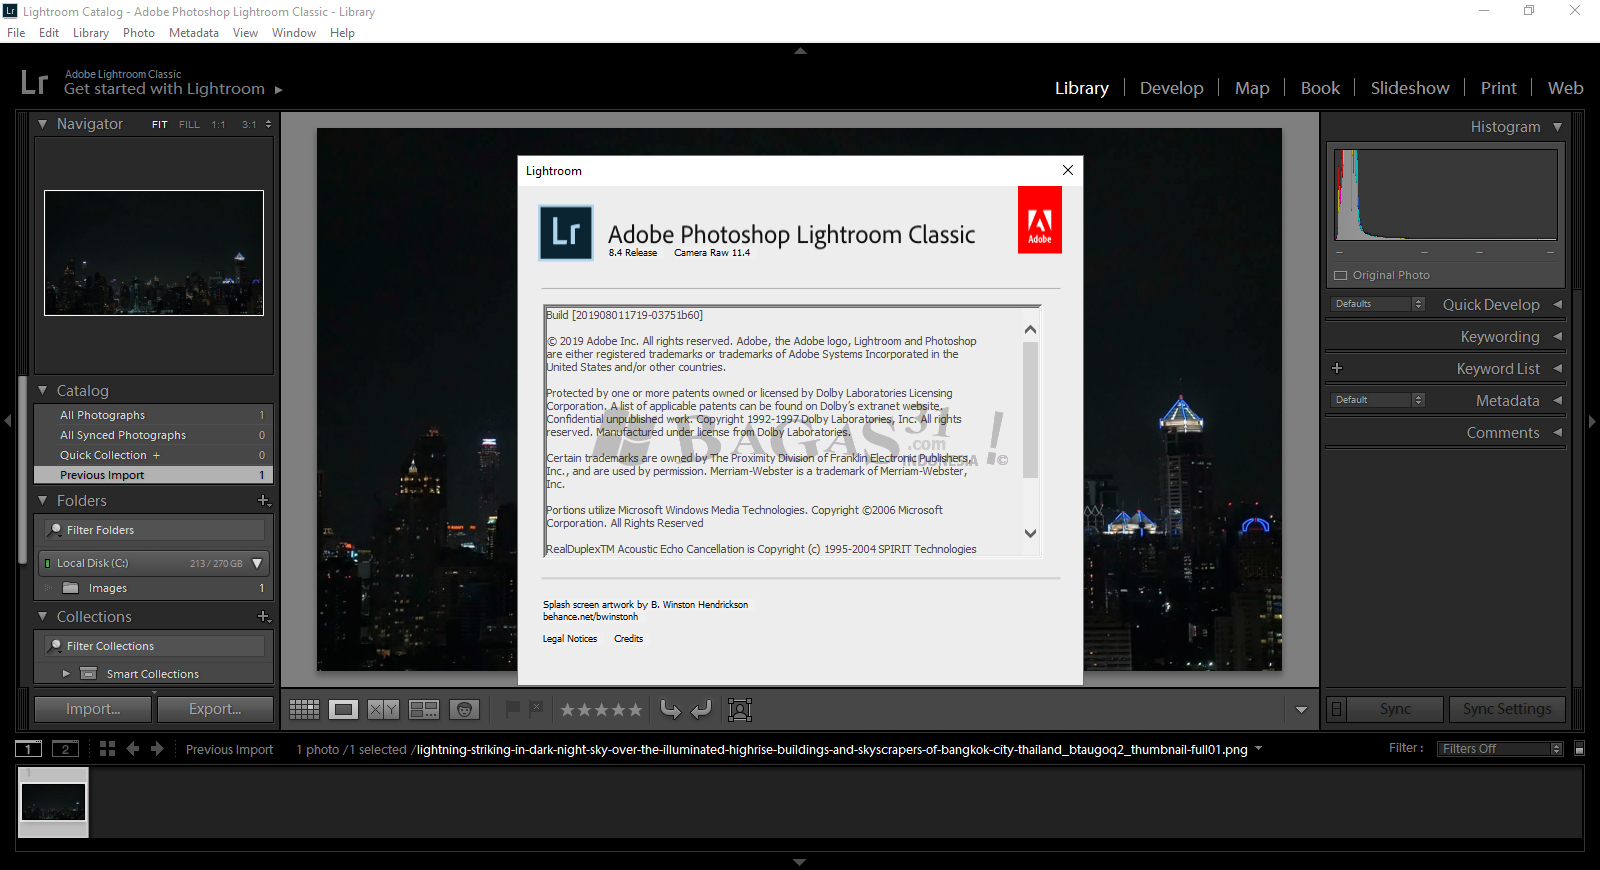 Adobe Photoshop Lightroom Classic CC 2019 8.4.0.10 Full Version